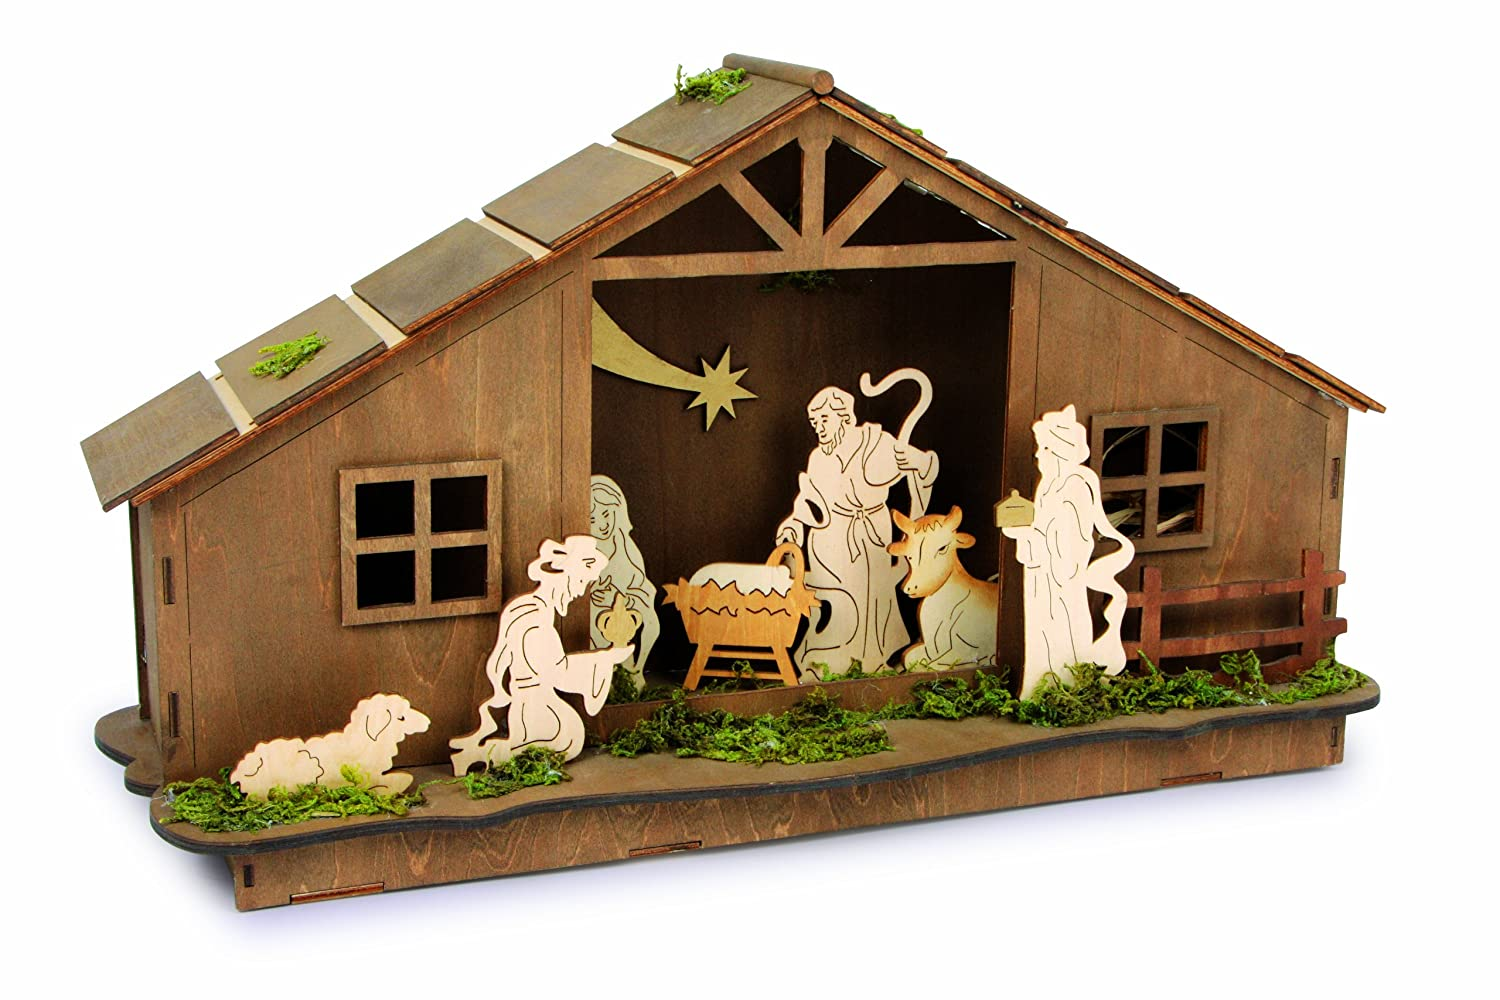 Small Foot Company 6446 Camp Nativity Scene Lamp [Energy Class A] Handelshaus LEGLER OHG B004APKB8W